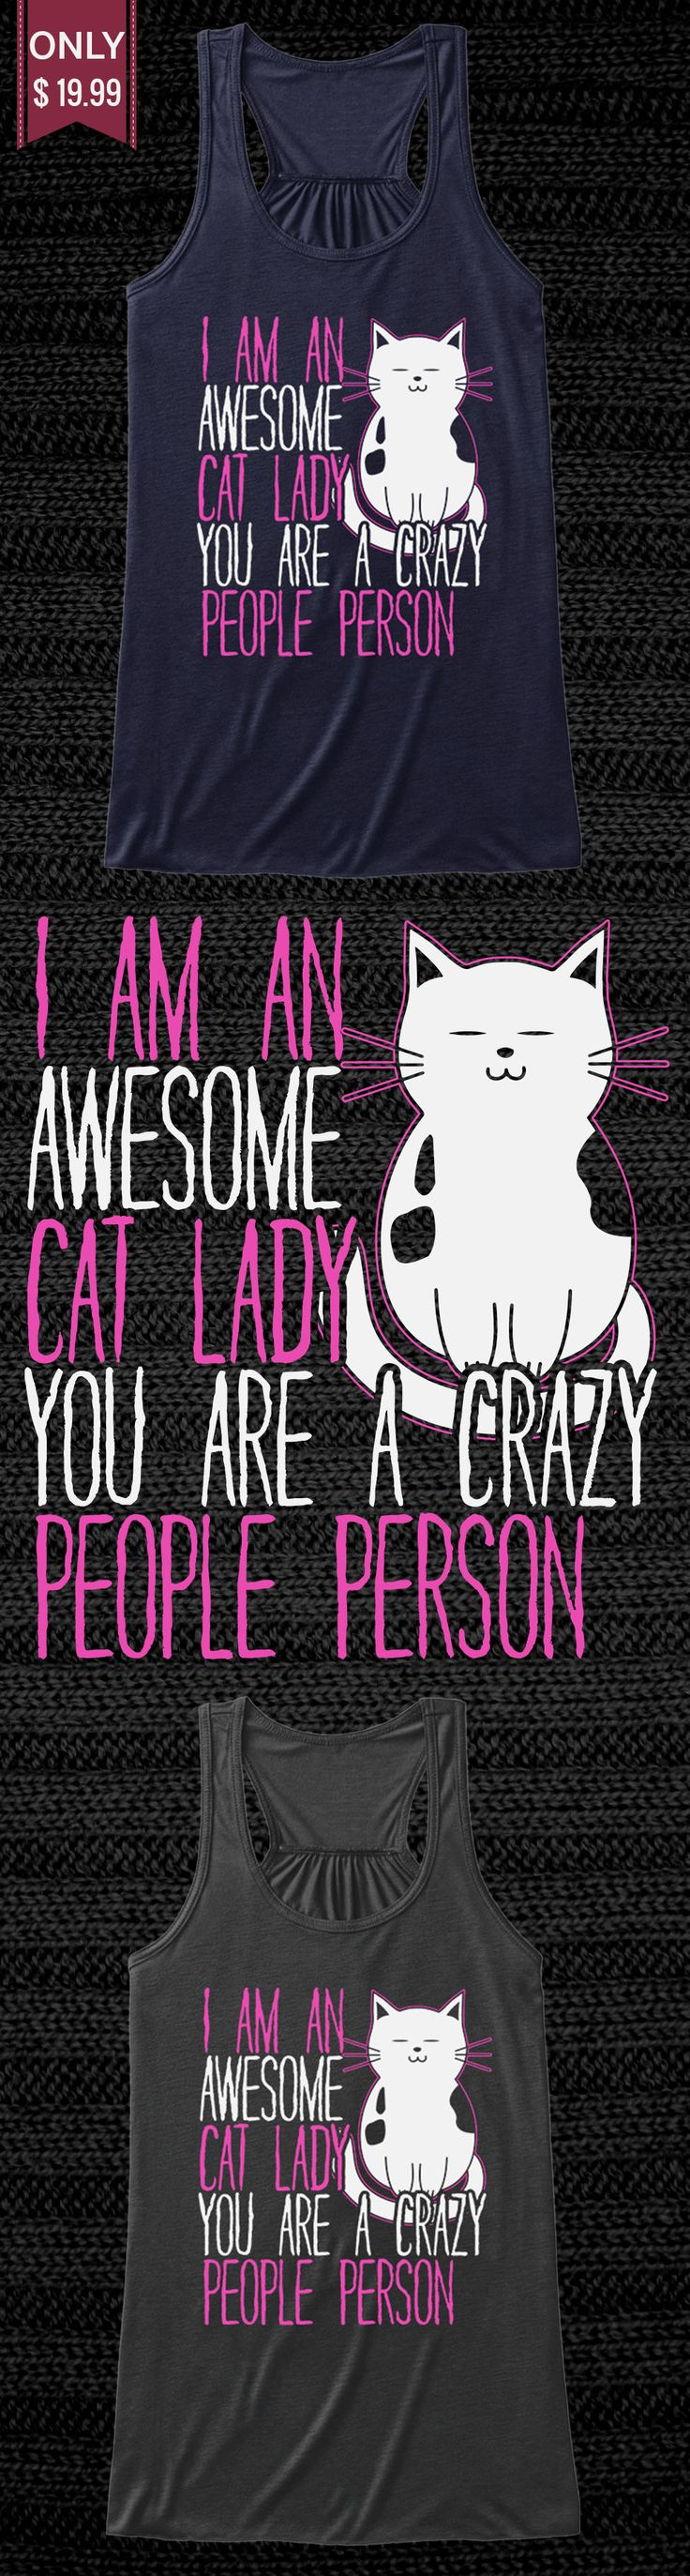 Awesome Cat Lady - Check out this Limited Edition Tank Tops and T-Shirt! You will not find anywhere else. Available in other colors too. Not sold in stores! Grab yours or gift it to a friend, you will both love it